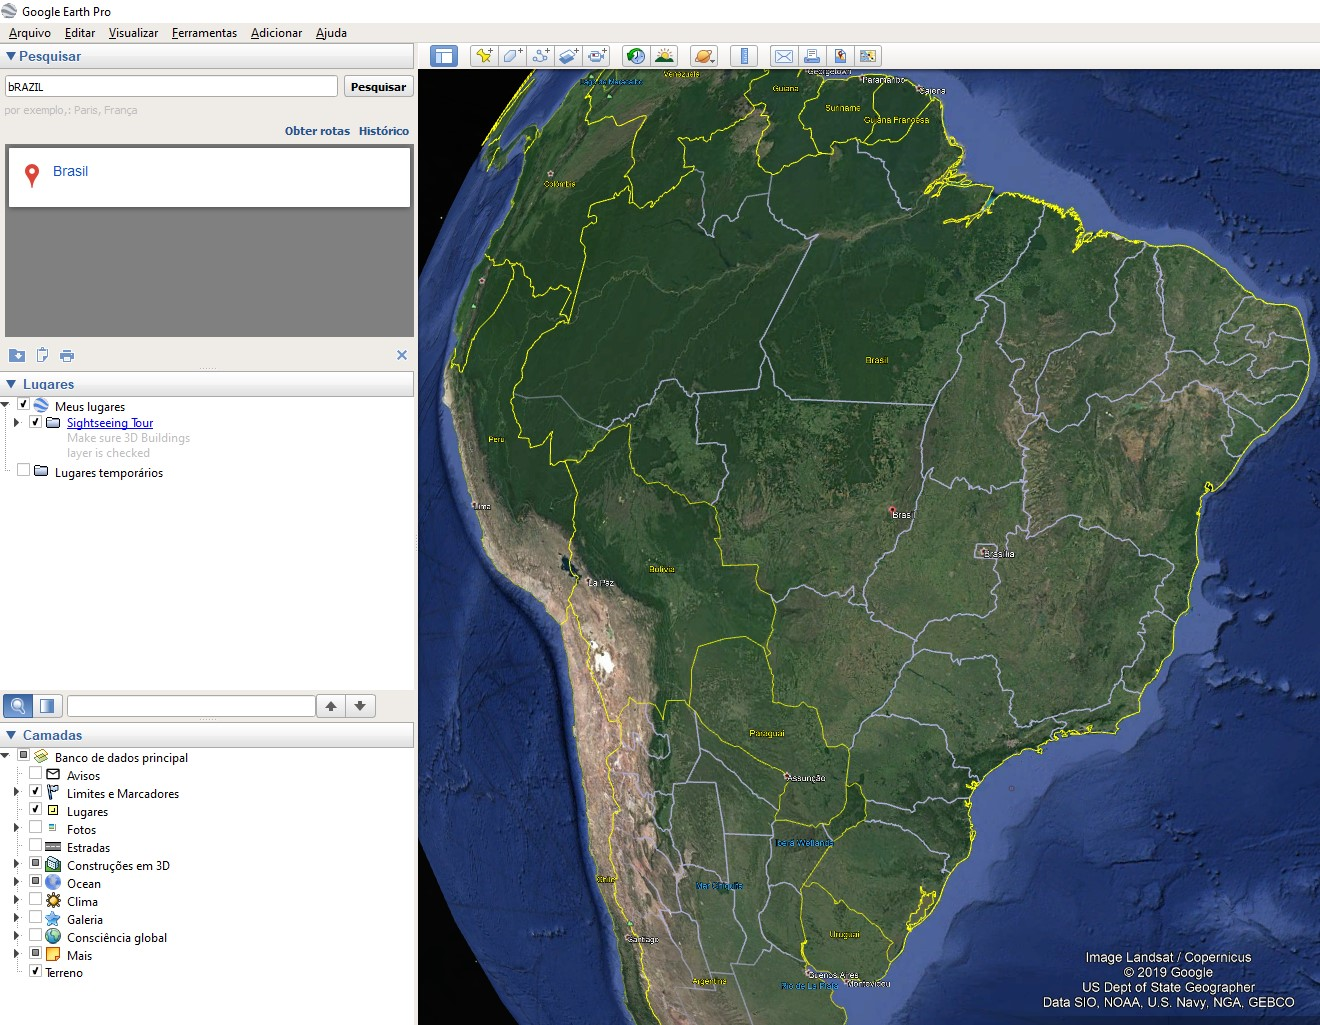 Interface do usuário do Google Earth Pro